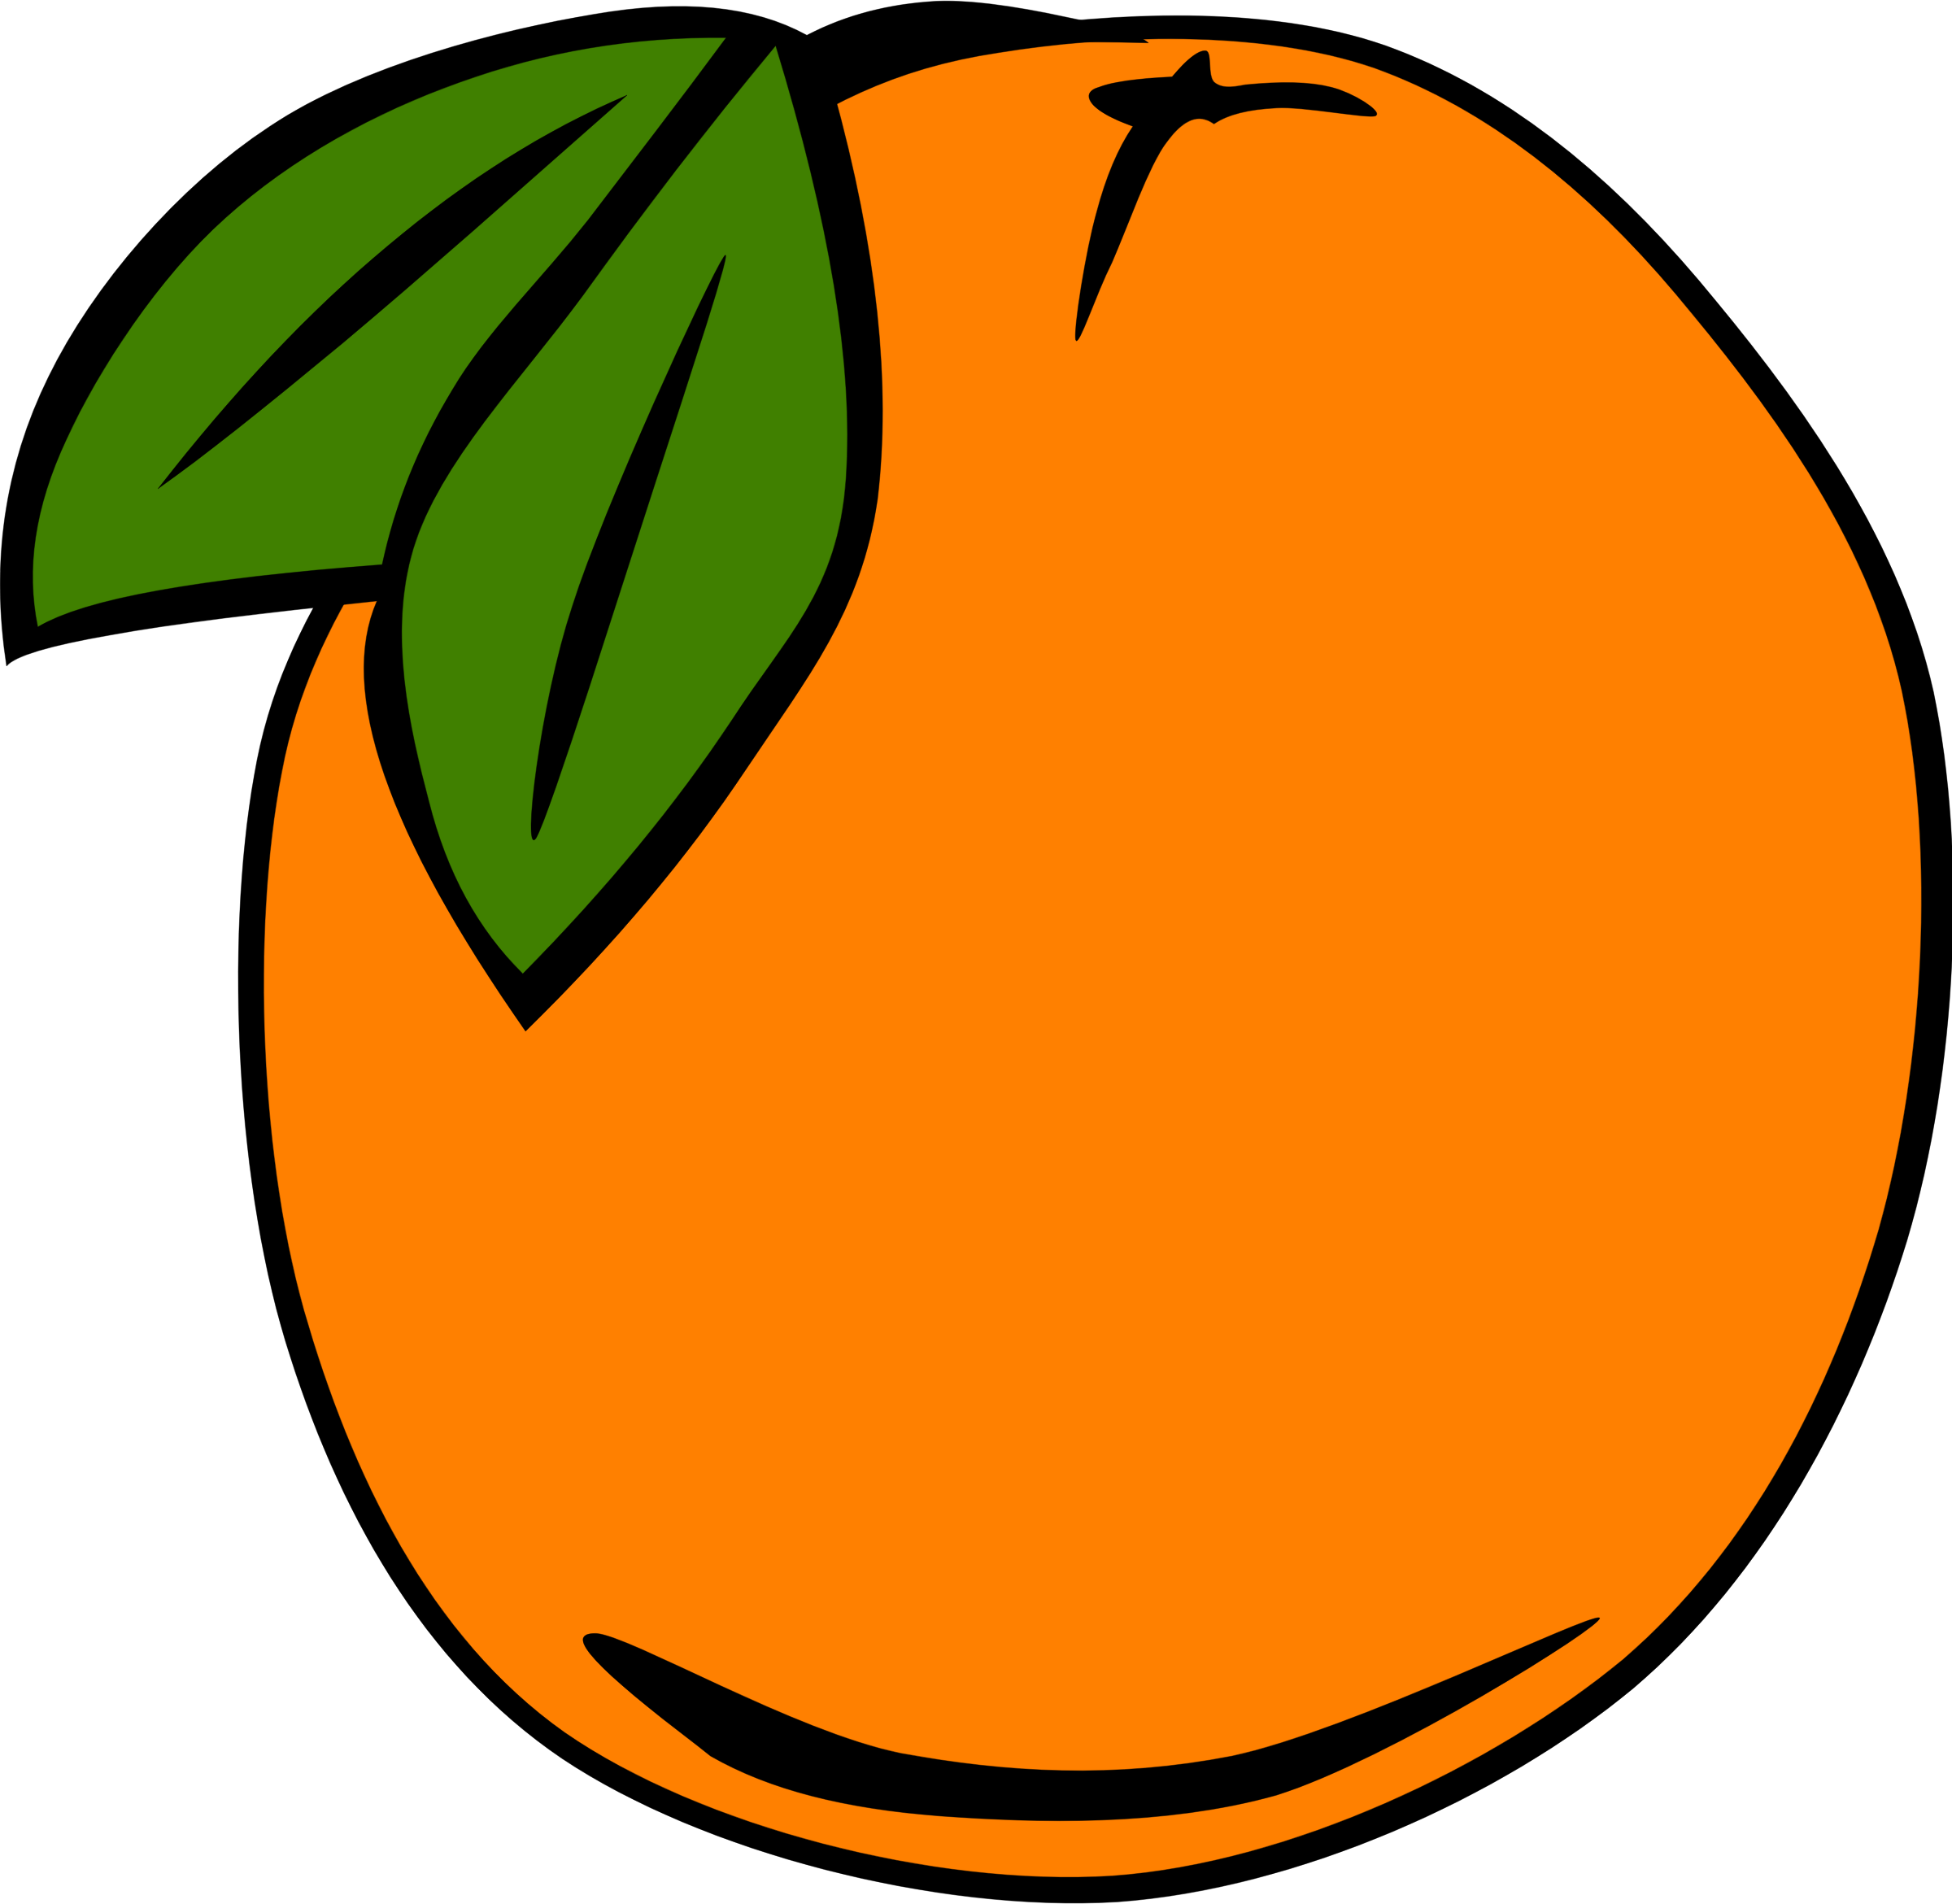 Clipart food simple. Fruit orange big image